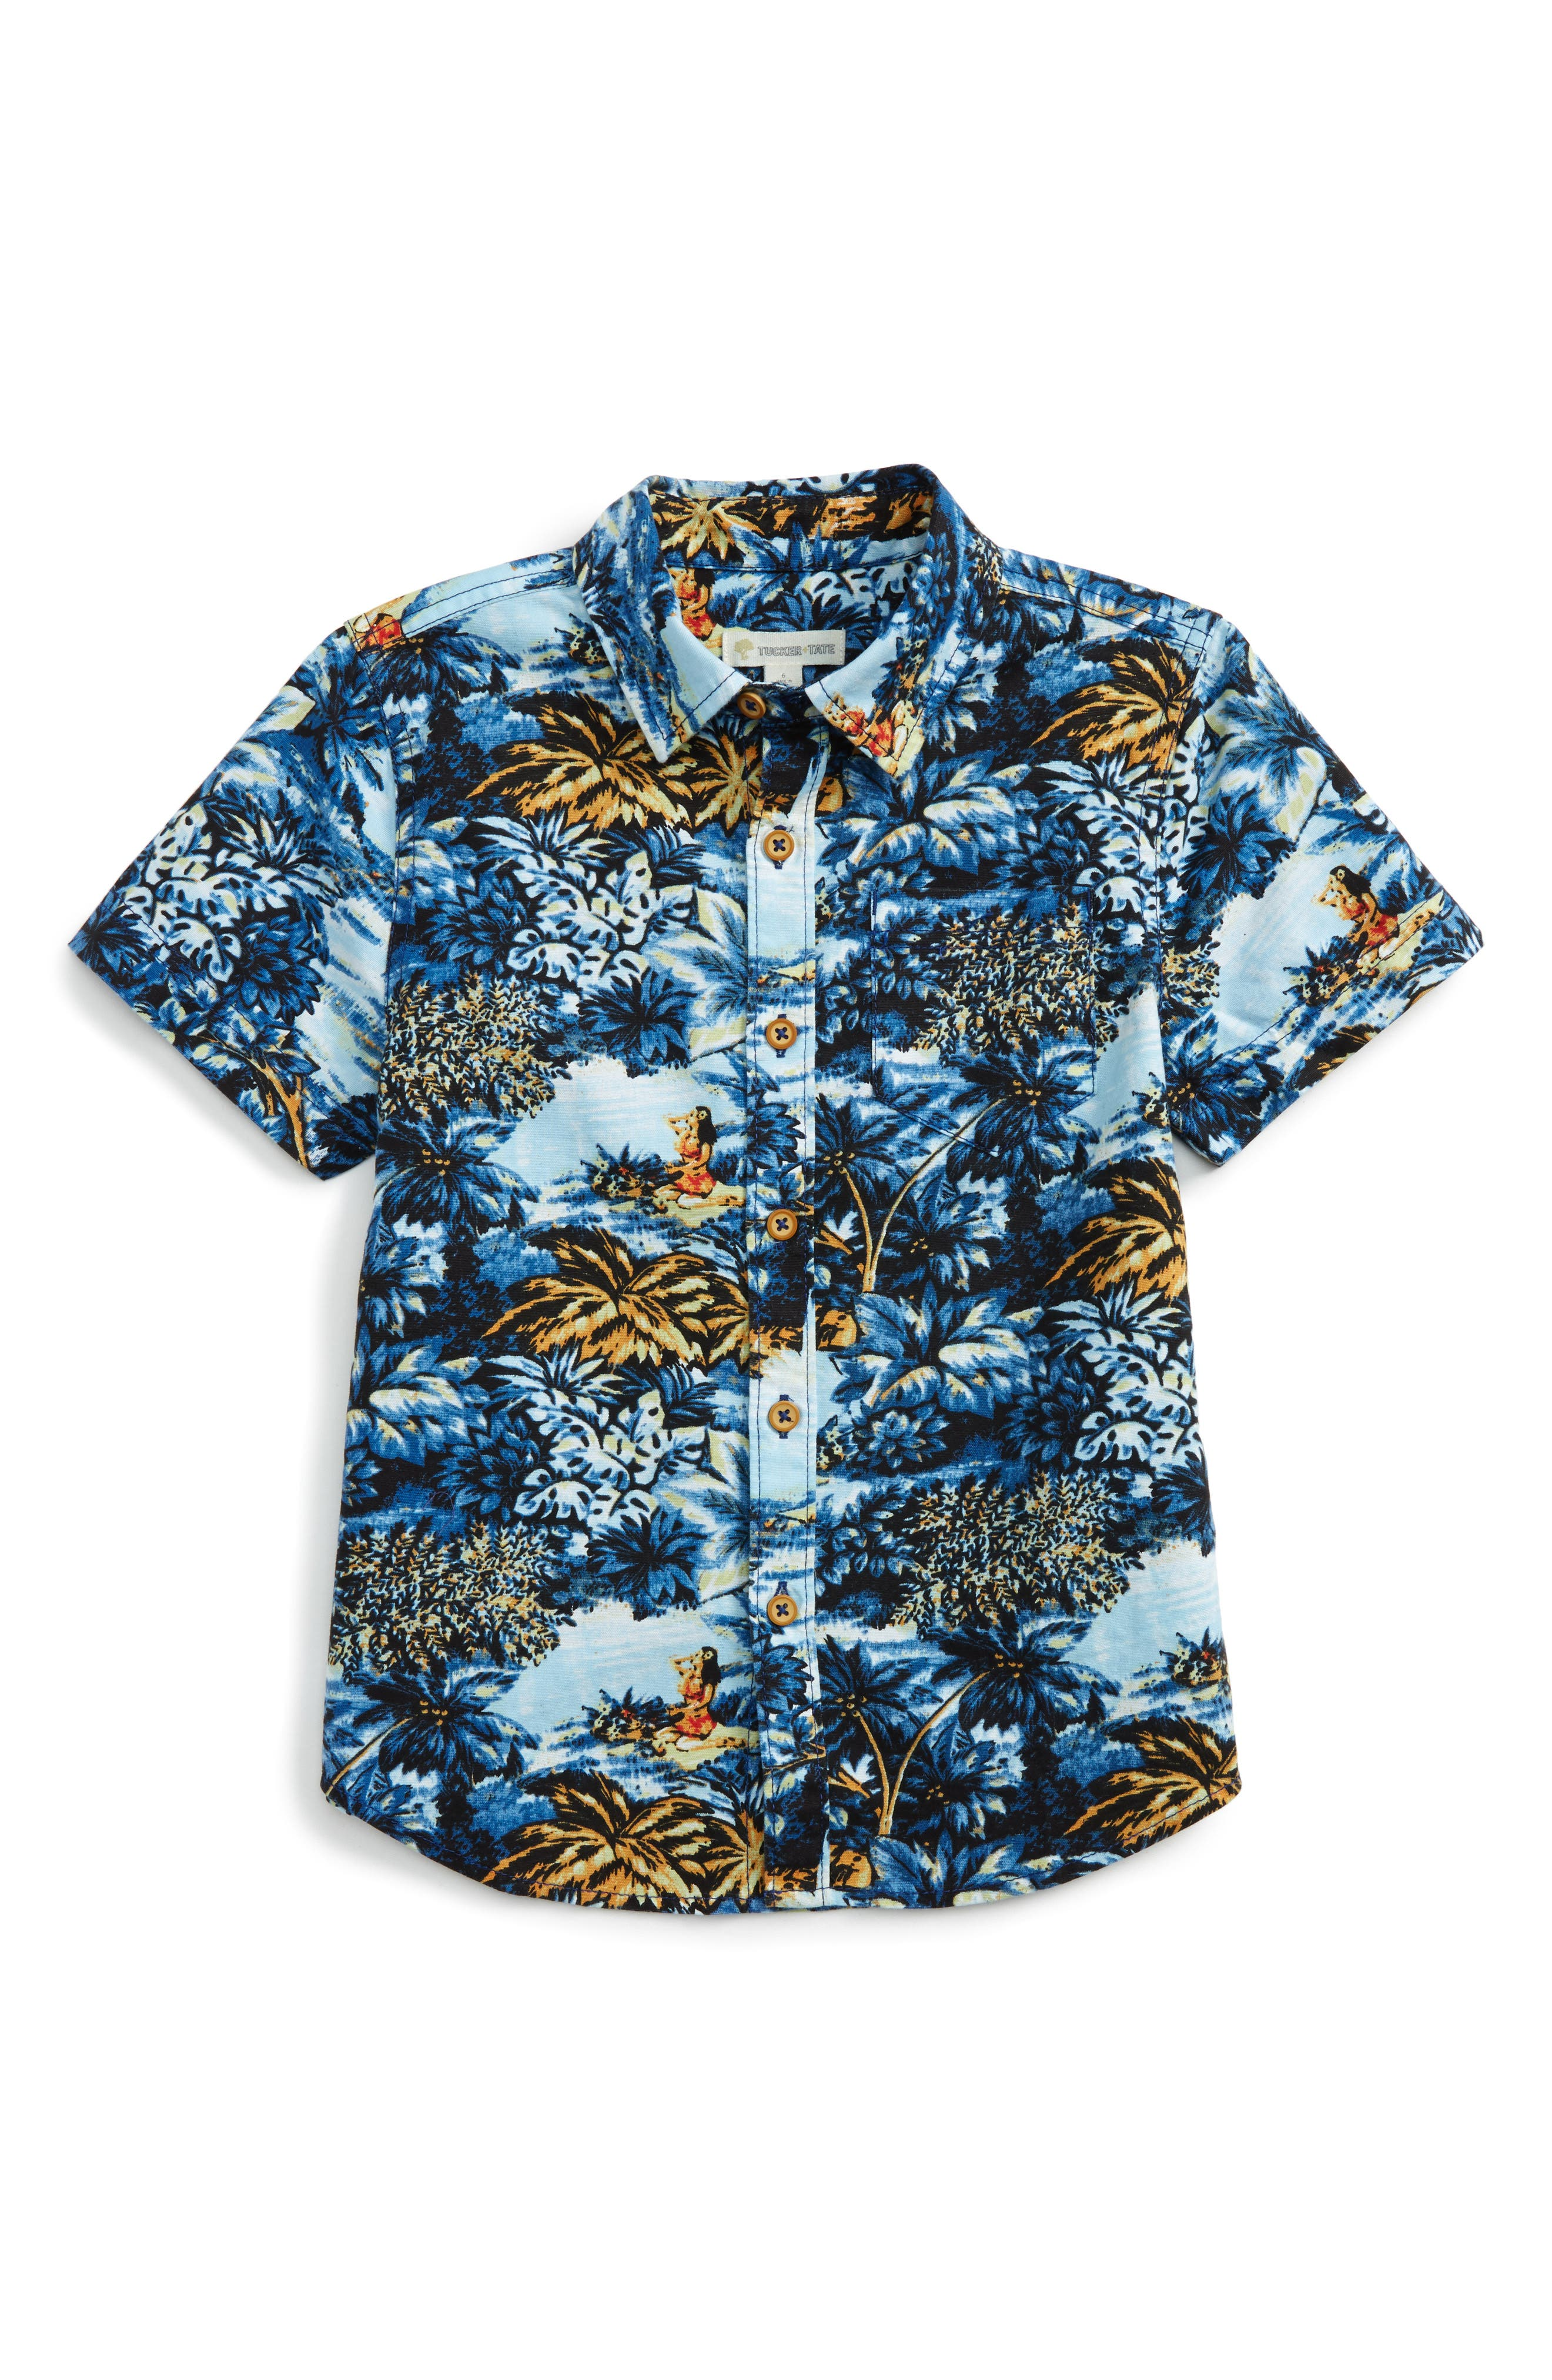 Alternate Image 1 Selected - Tucker + Tate Print Woven Shirt (Toddler Boys & Little Boys)